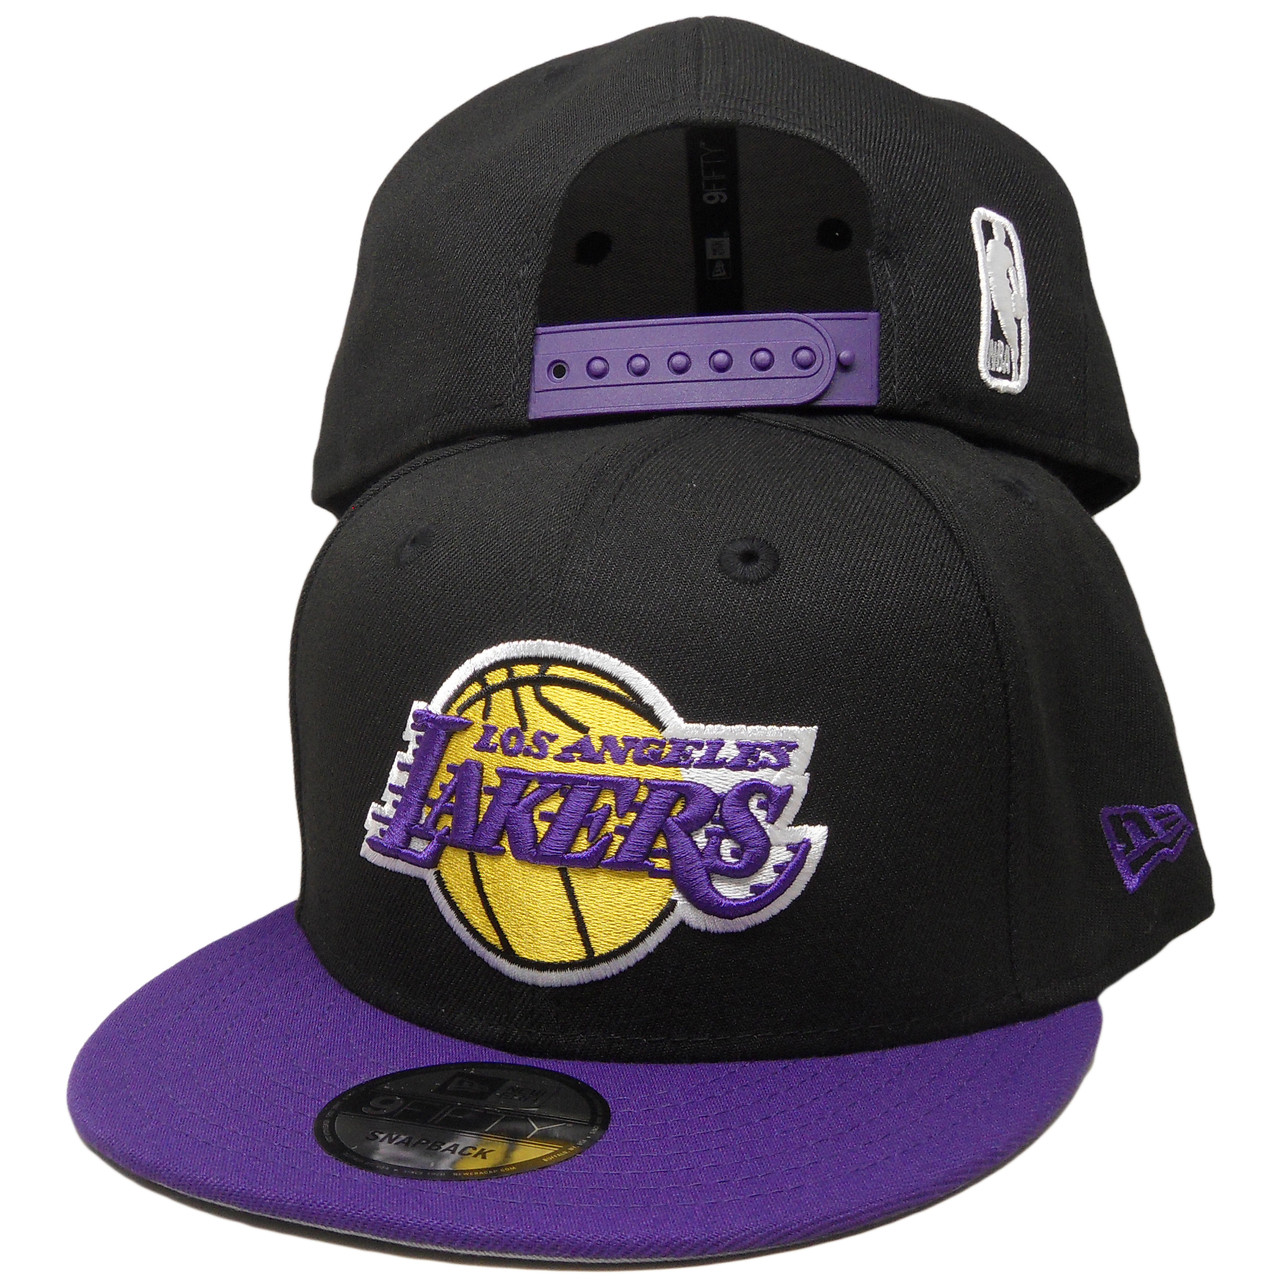 new arrival 4fea1 20f5a Los Angeles Lakers New Era 9Fifty 2Tone 9Fifty Snapback - Black, Purple,  Yellow - ECapsUnlimited.com